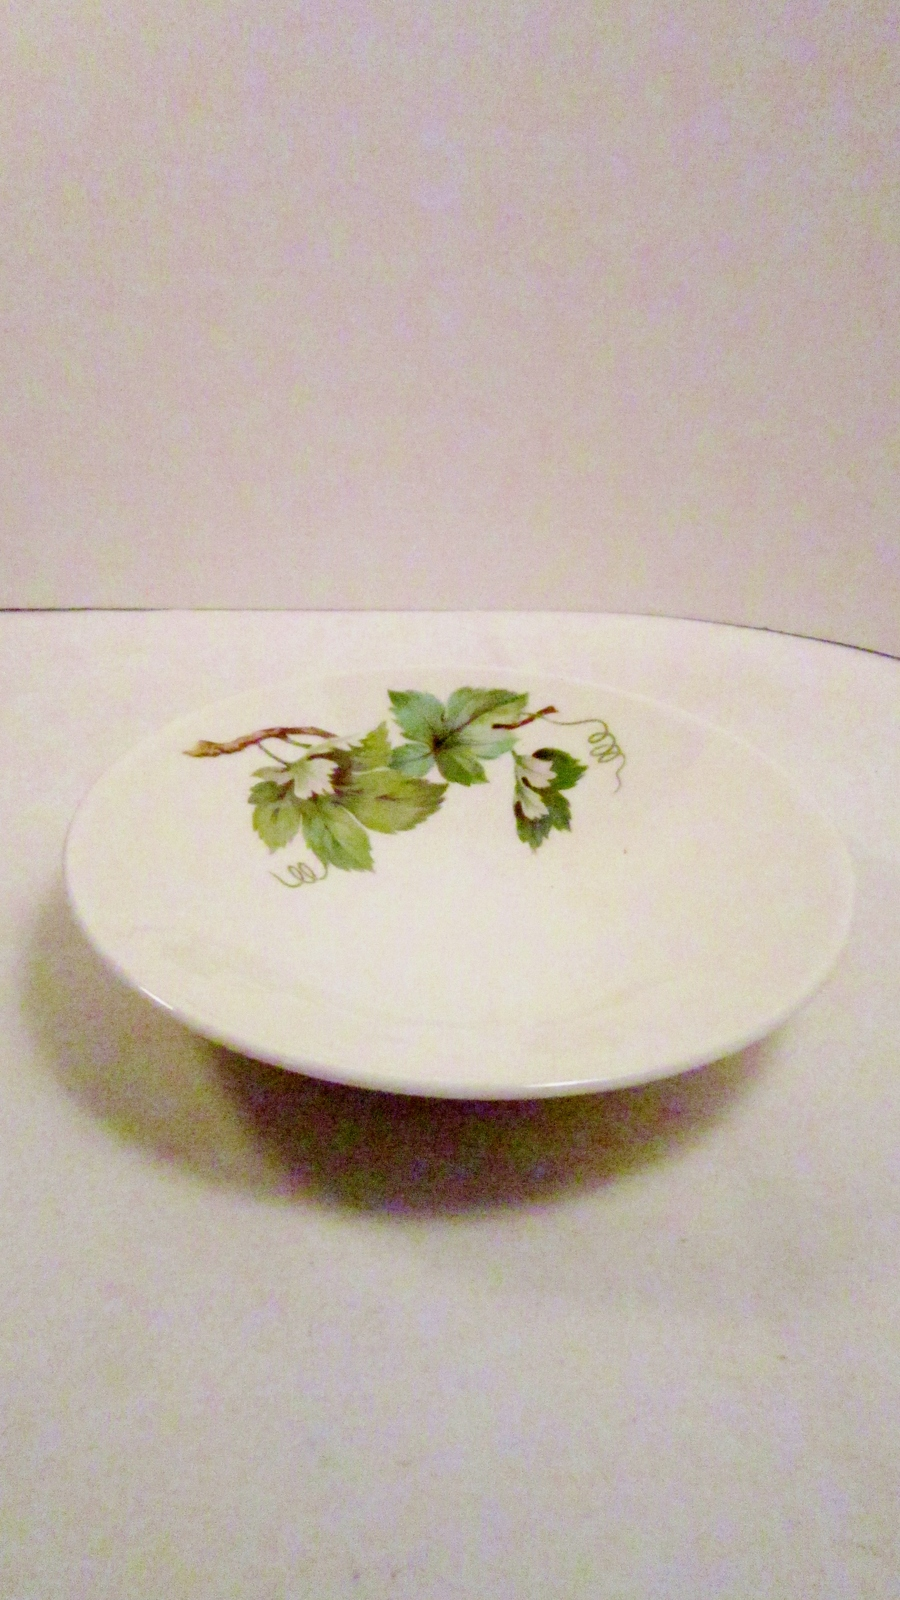 Edwin knowles grapevine pattern dessert or fruit bowl 01